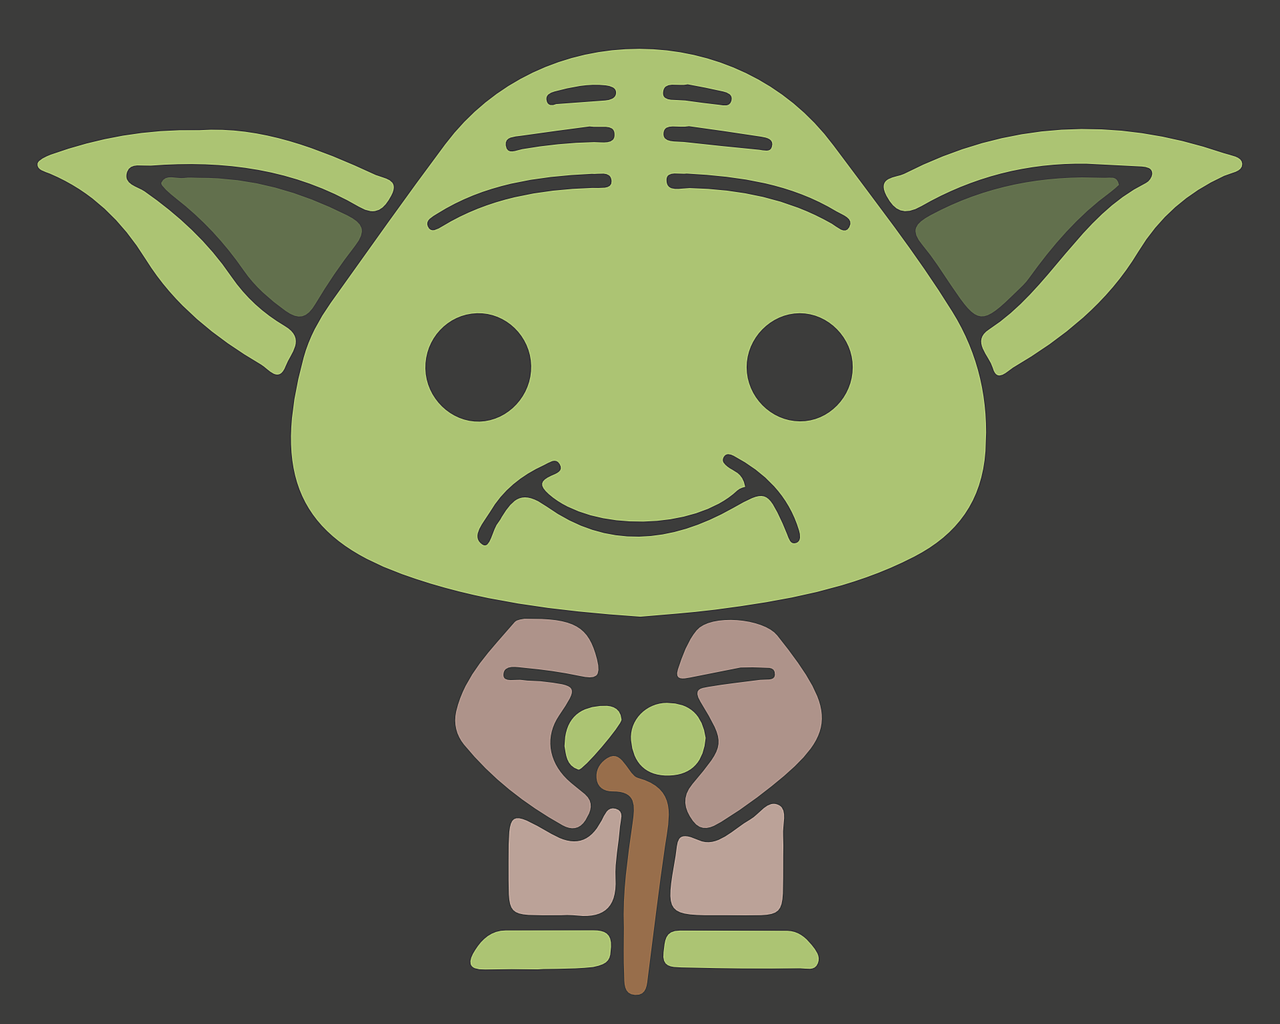 yoda jedi star wars free photo